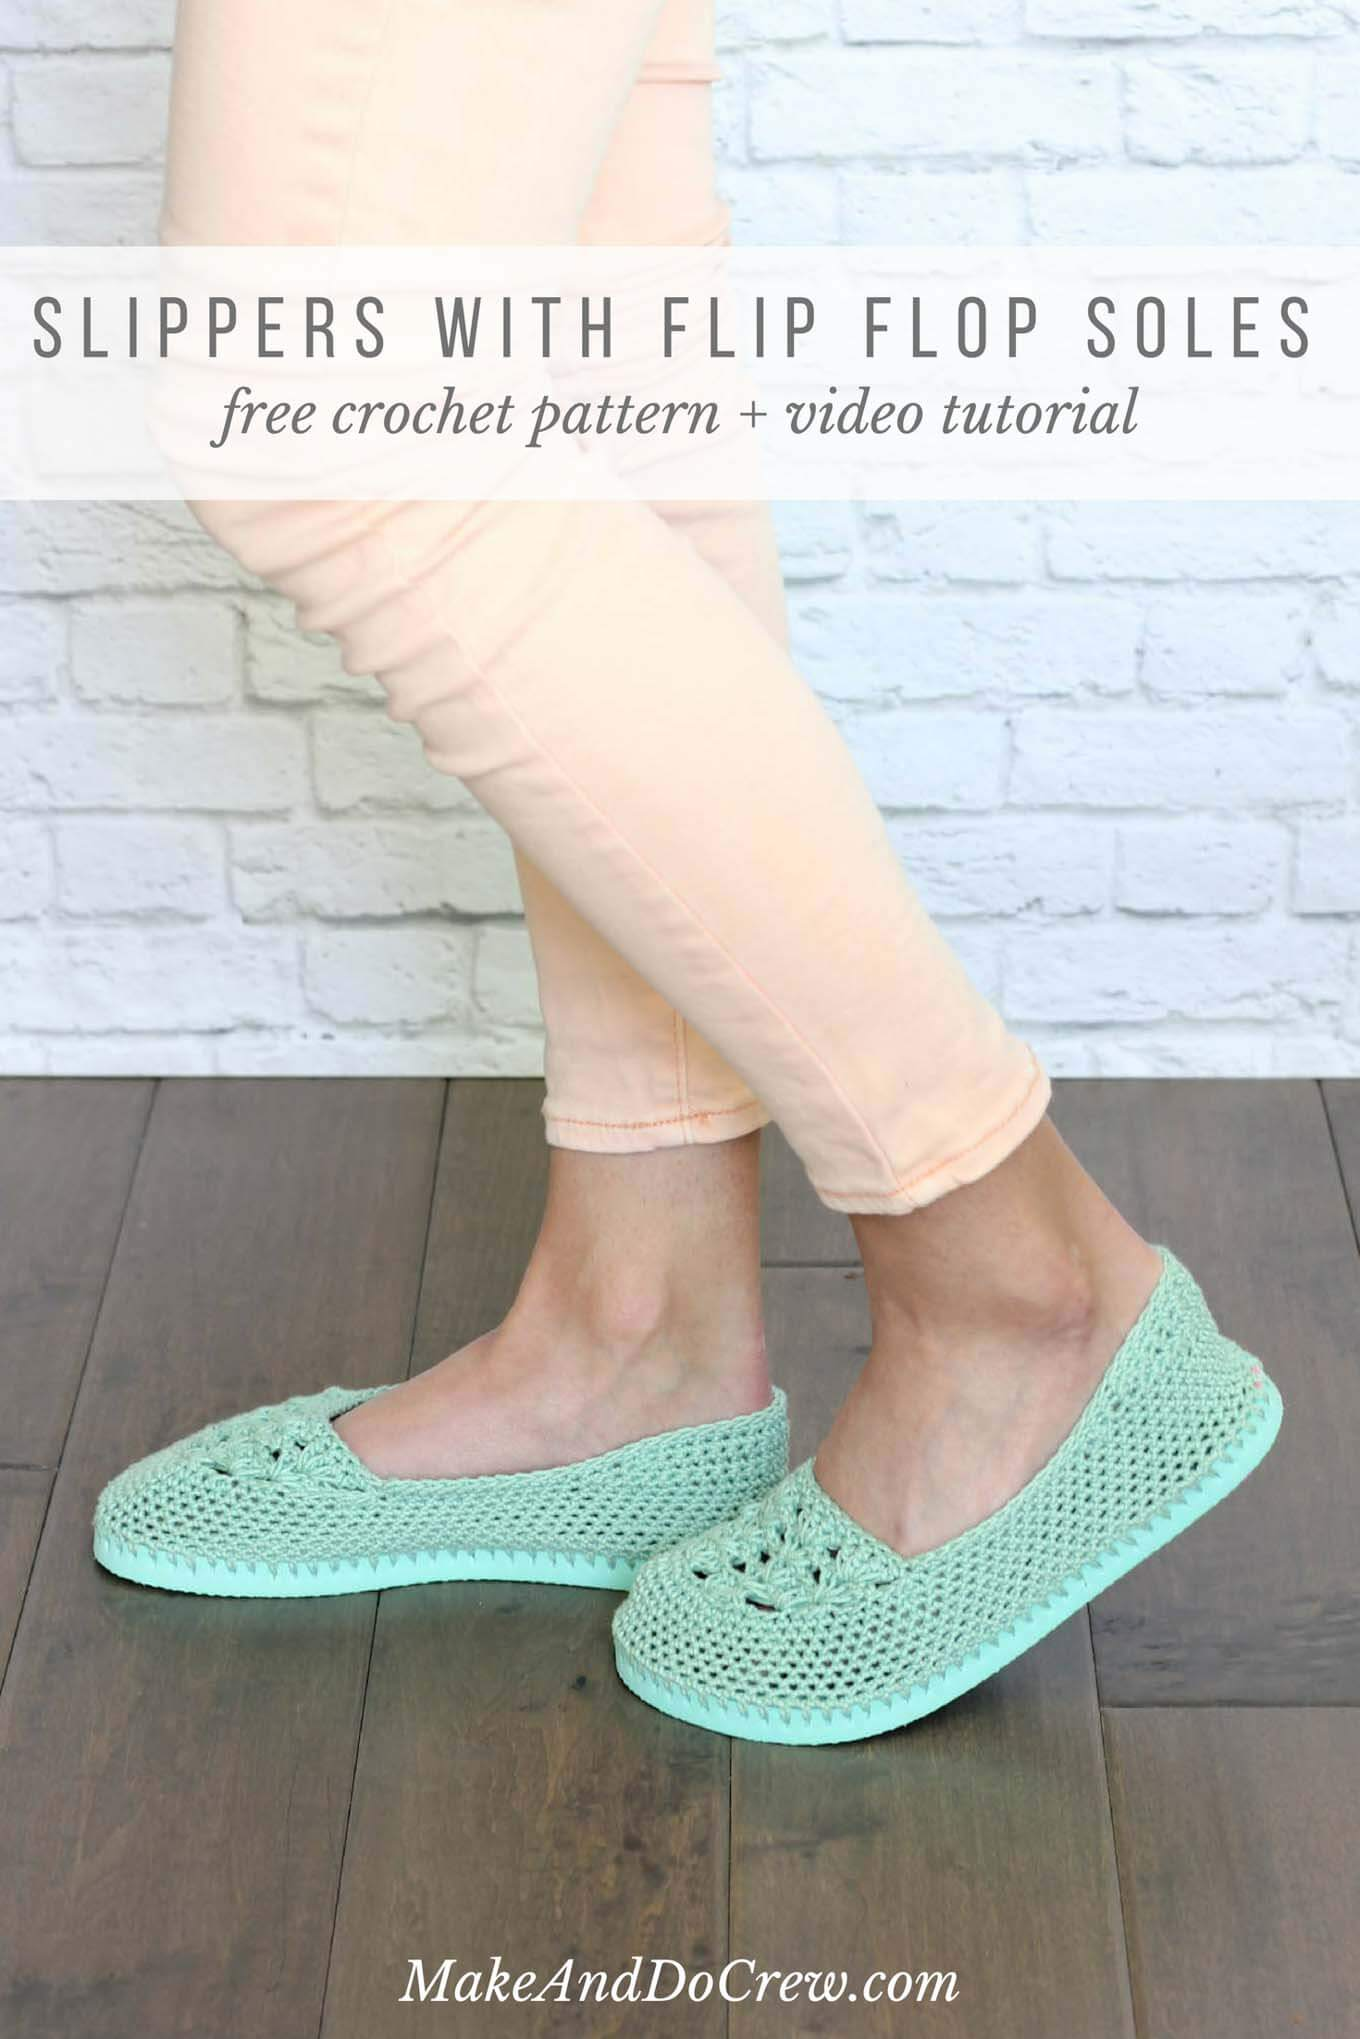 dba002bce5ae2 Crochet Slippers with Flip Flop Soles -- Free Pattern + Video Tutorial!